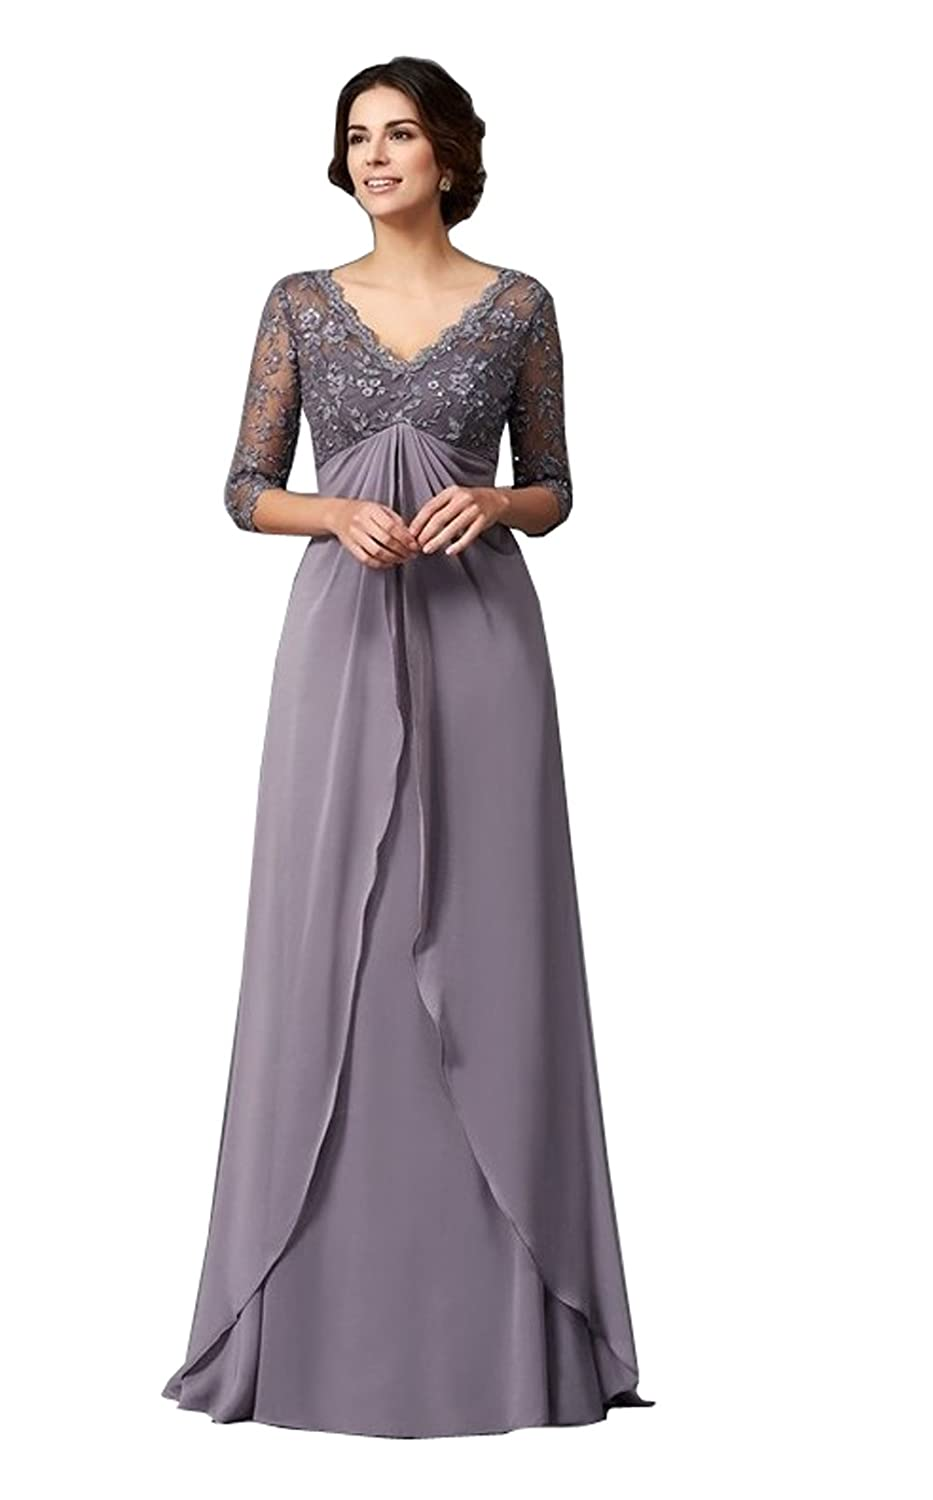 a2af626018a Best Store For Mother Of The Bride Dress - Gomes Weine AG